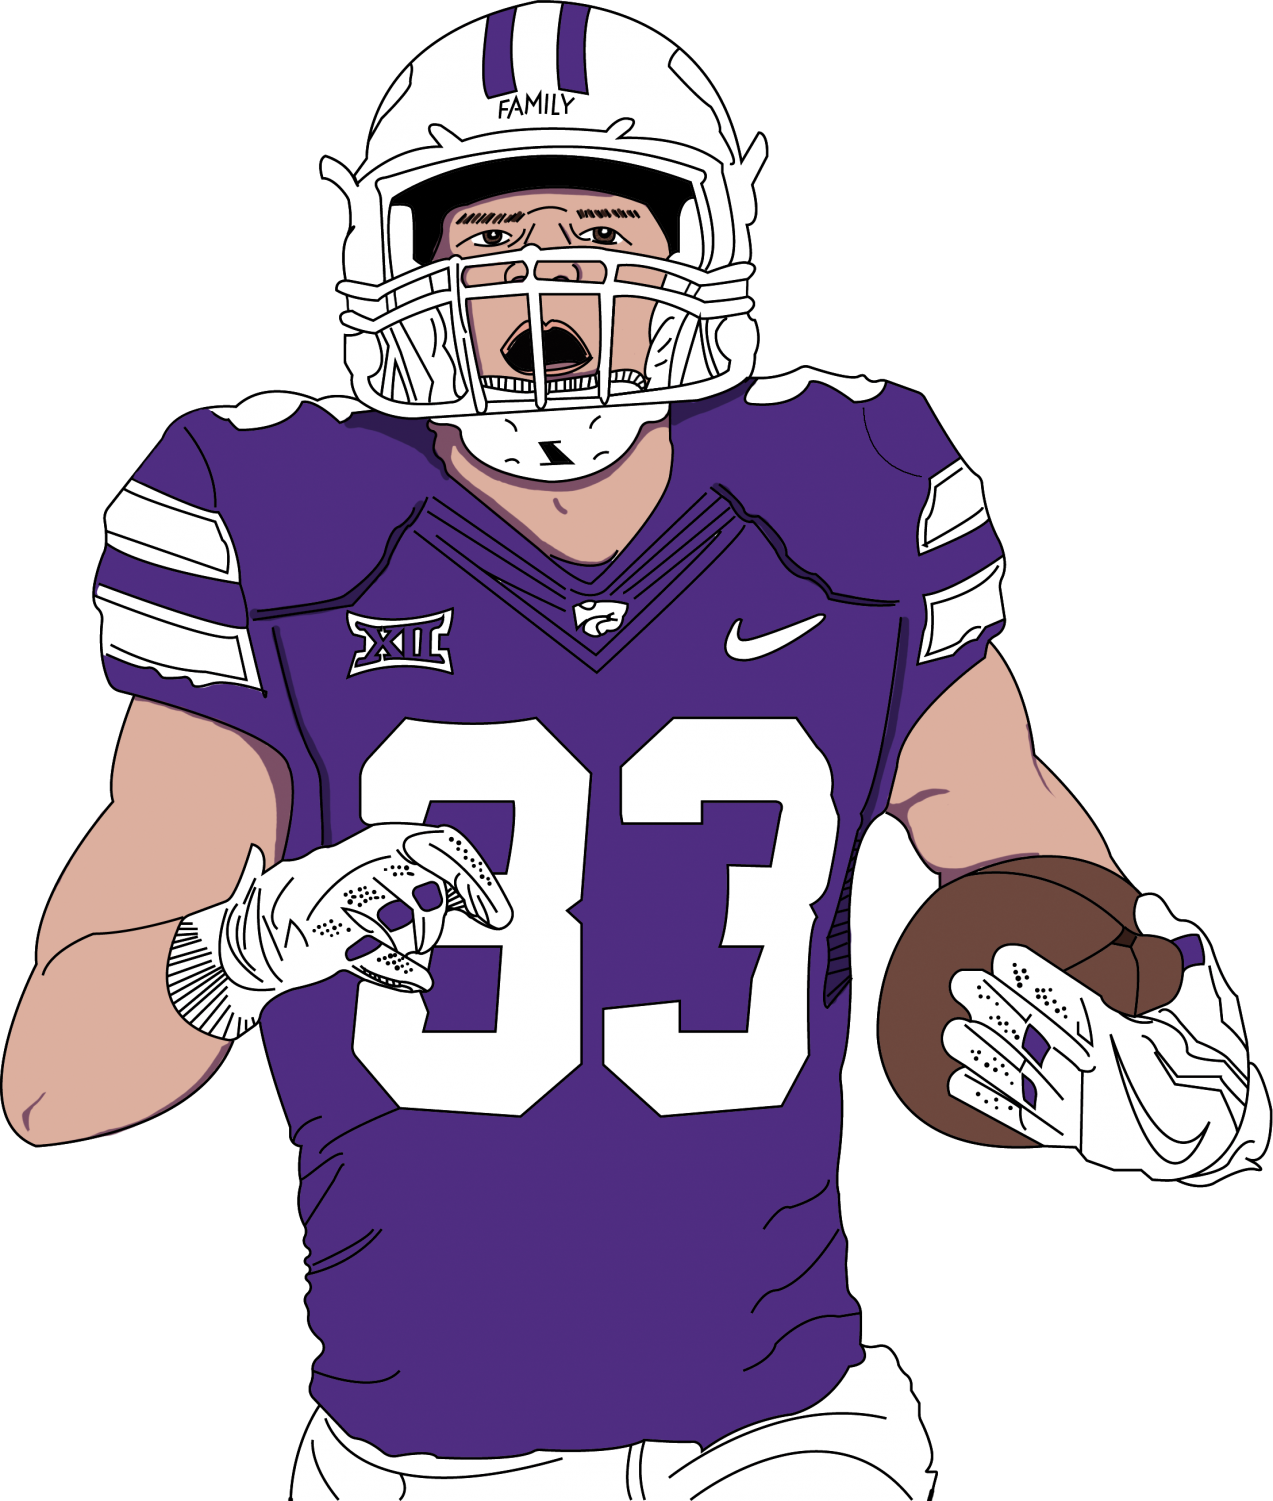 2015 BVNW graduate Dalton Schoen has made a name for himself at Kansas State after walking on to the Wildcats roster.